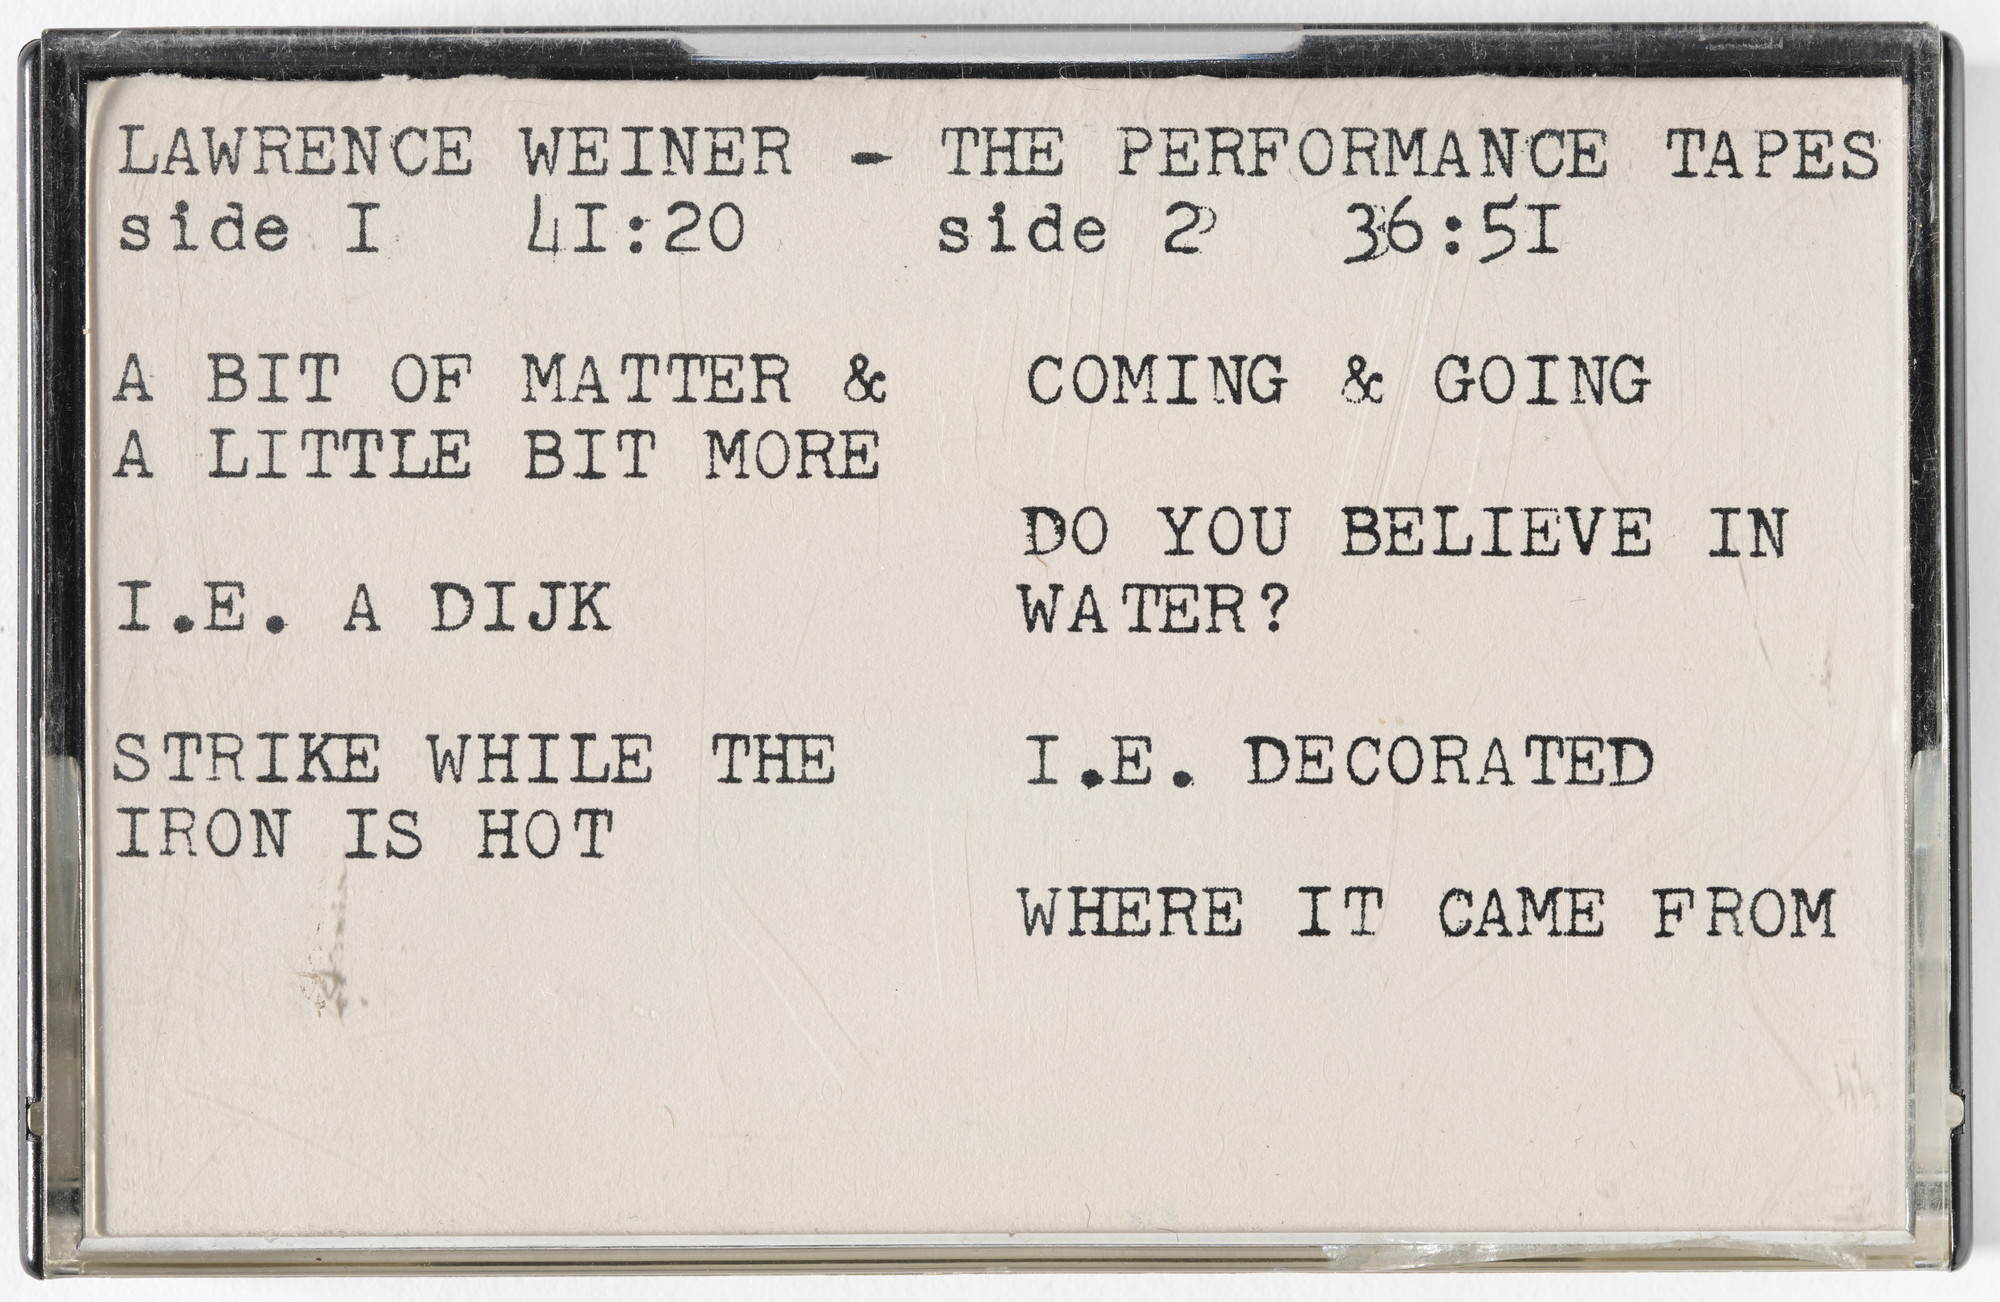 Lawrence Weiner. Lawrence Weiner - The Performance Tapes. n.d.